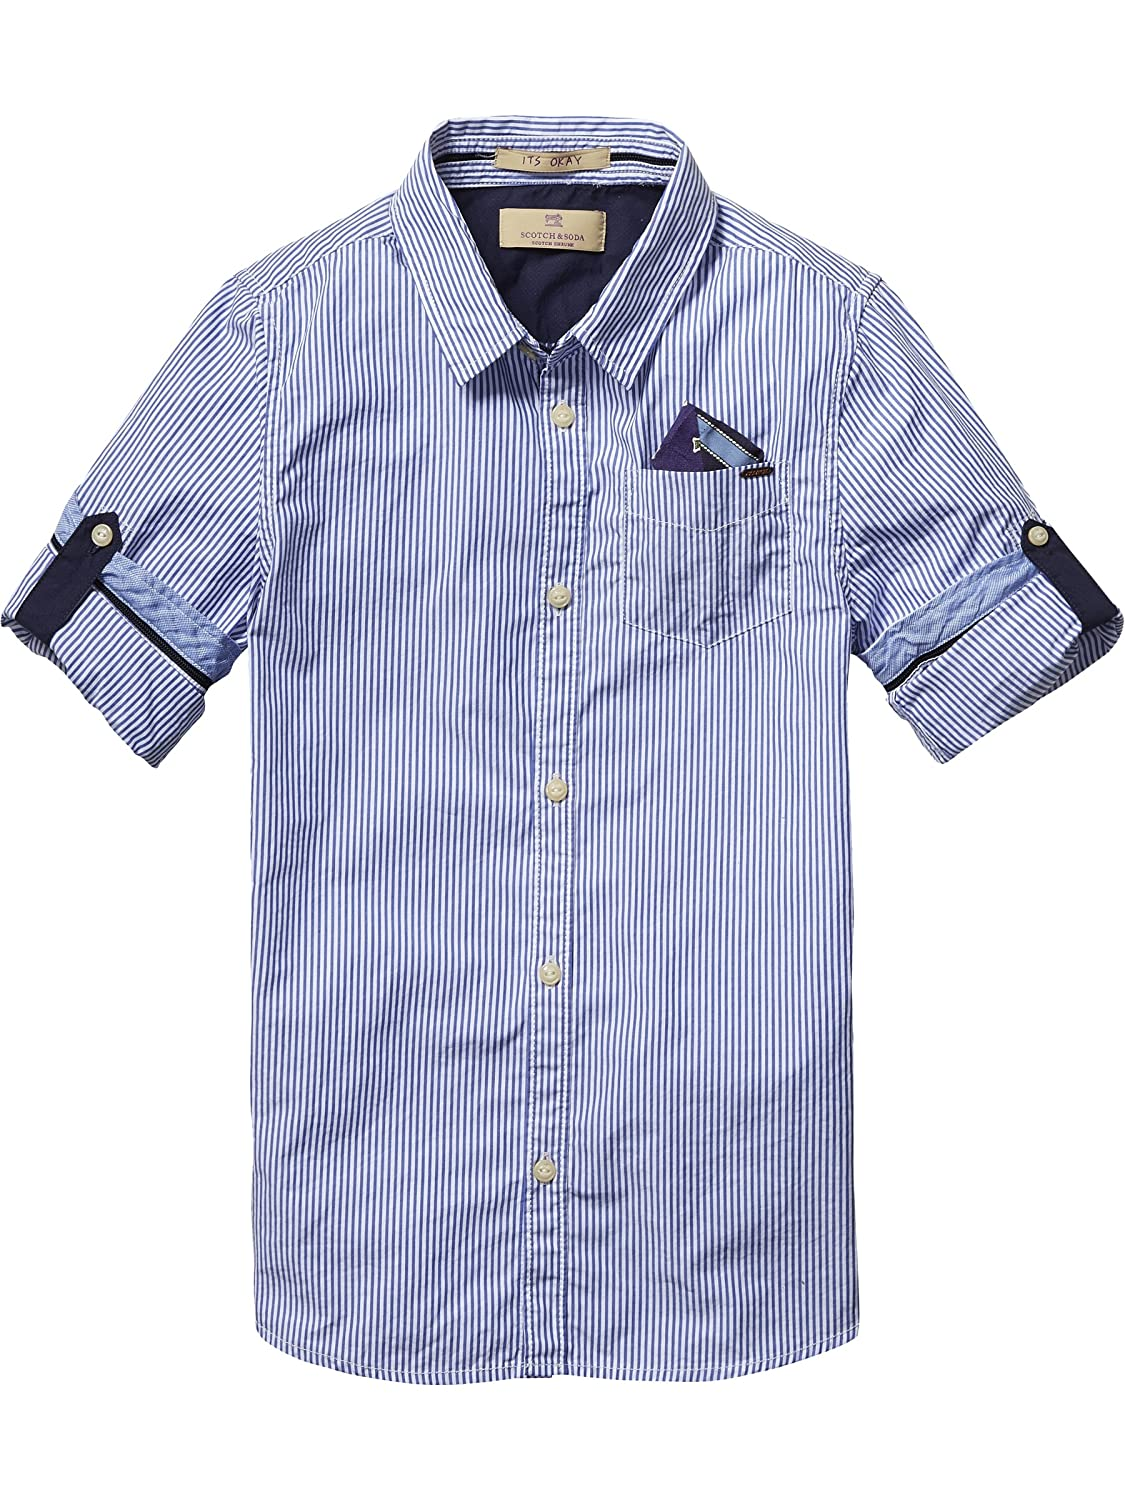 Scotch Shrunk Jungen Hemd Blue Series Shirt with Detachable Pocket Square